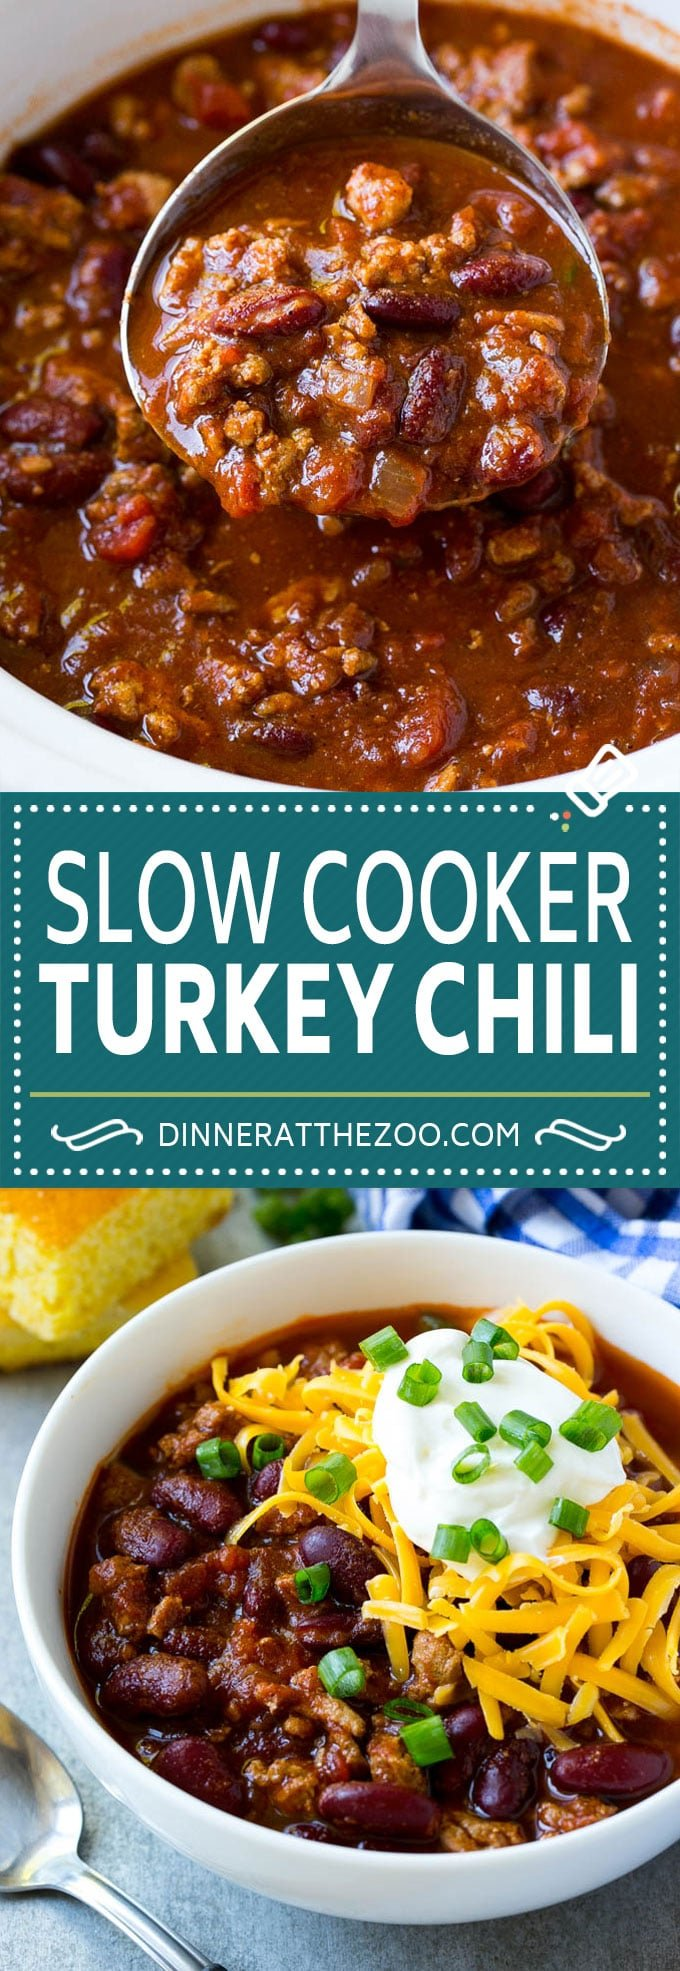 Slow Cooker Turkey Chili Recipe | Crockpot Chili | Turkey Chili | Chili With Beans Recipe | Healthy Chili Recipe #turkey #chili #beans #soup #slowcooker #crockpot #dinneratthezoo